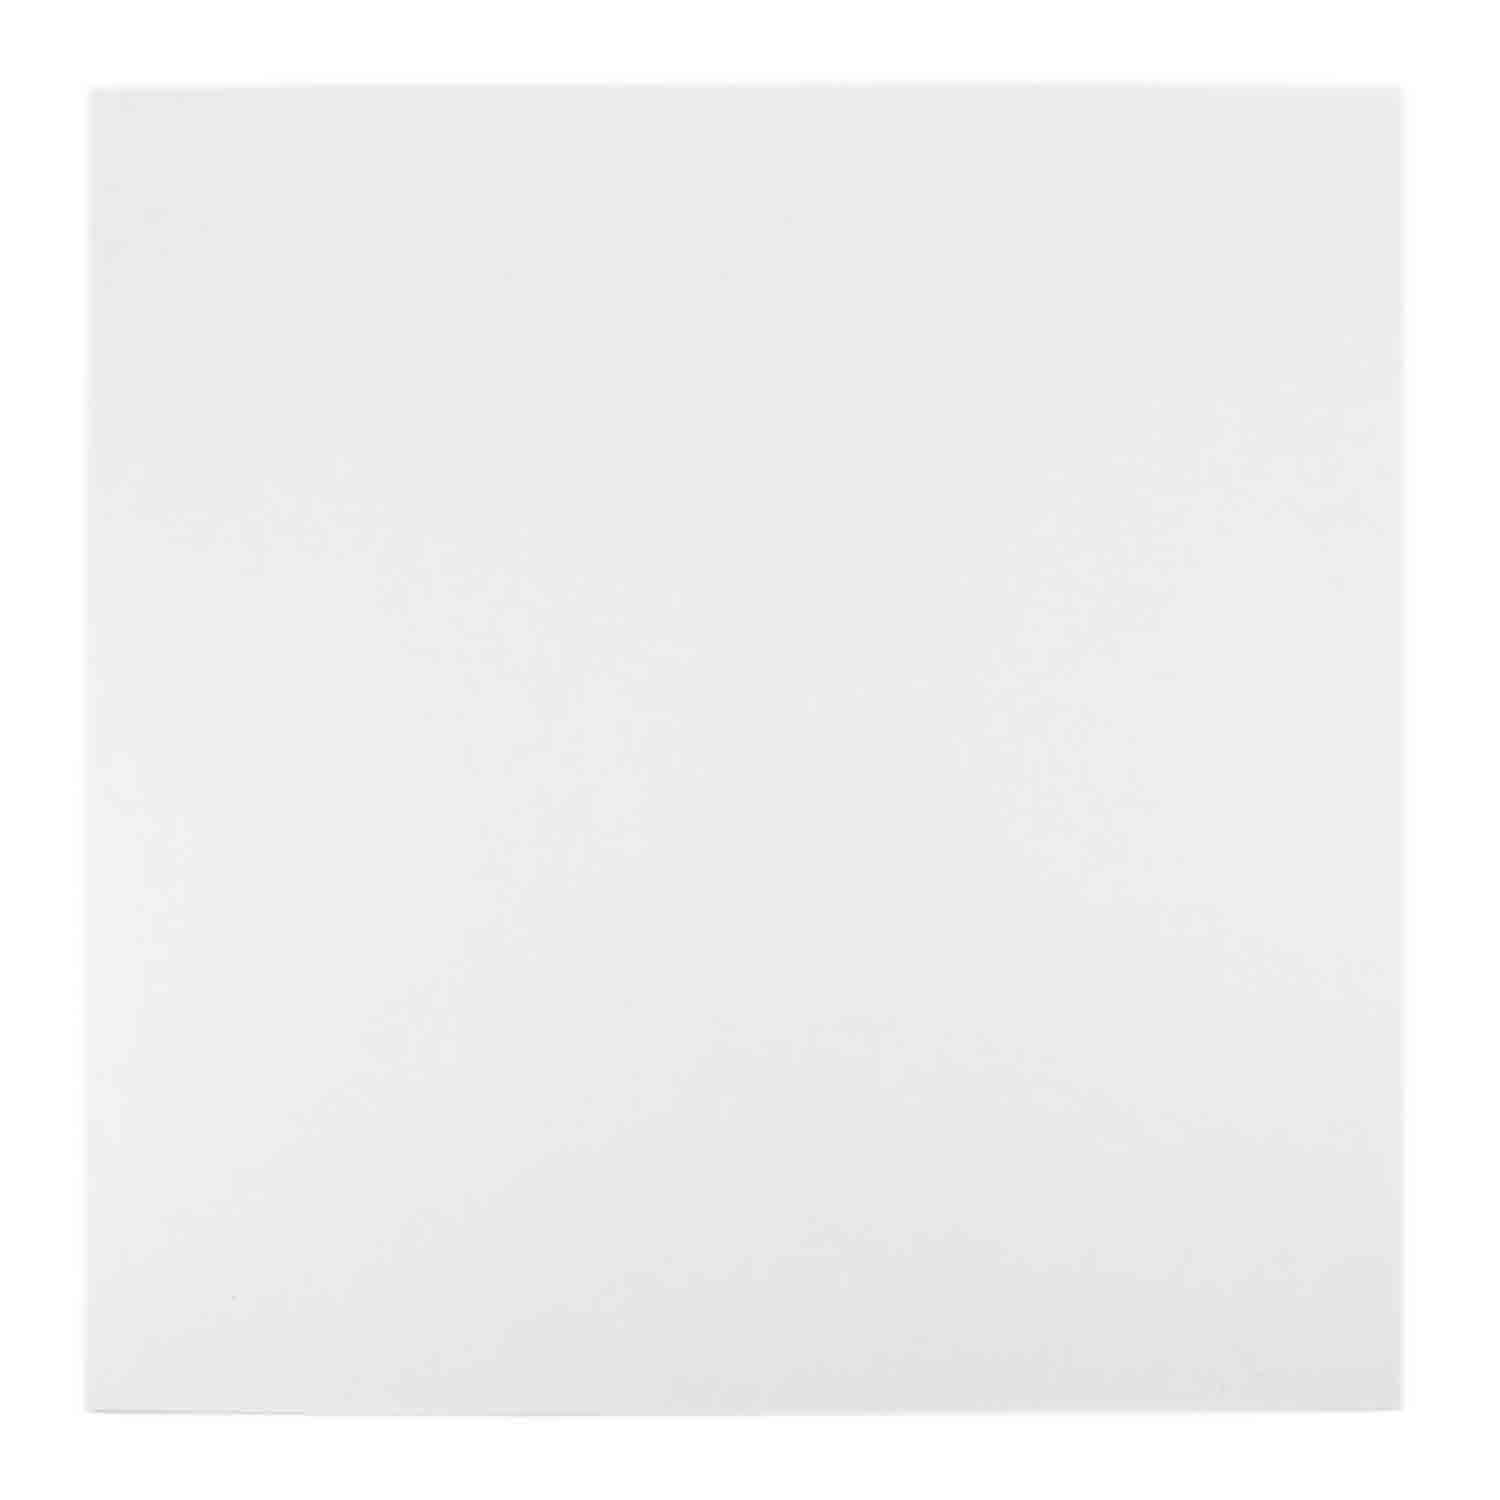 "6"" Square White Foil Sturdy Board"